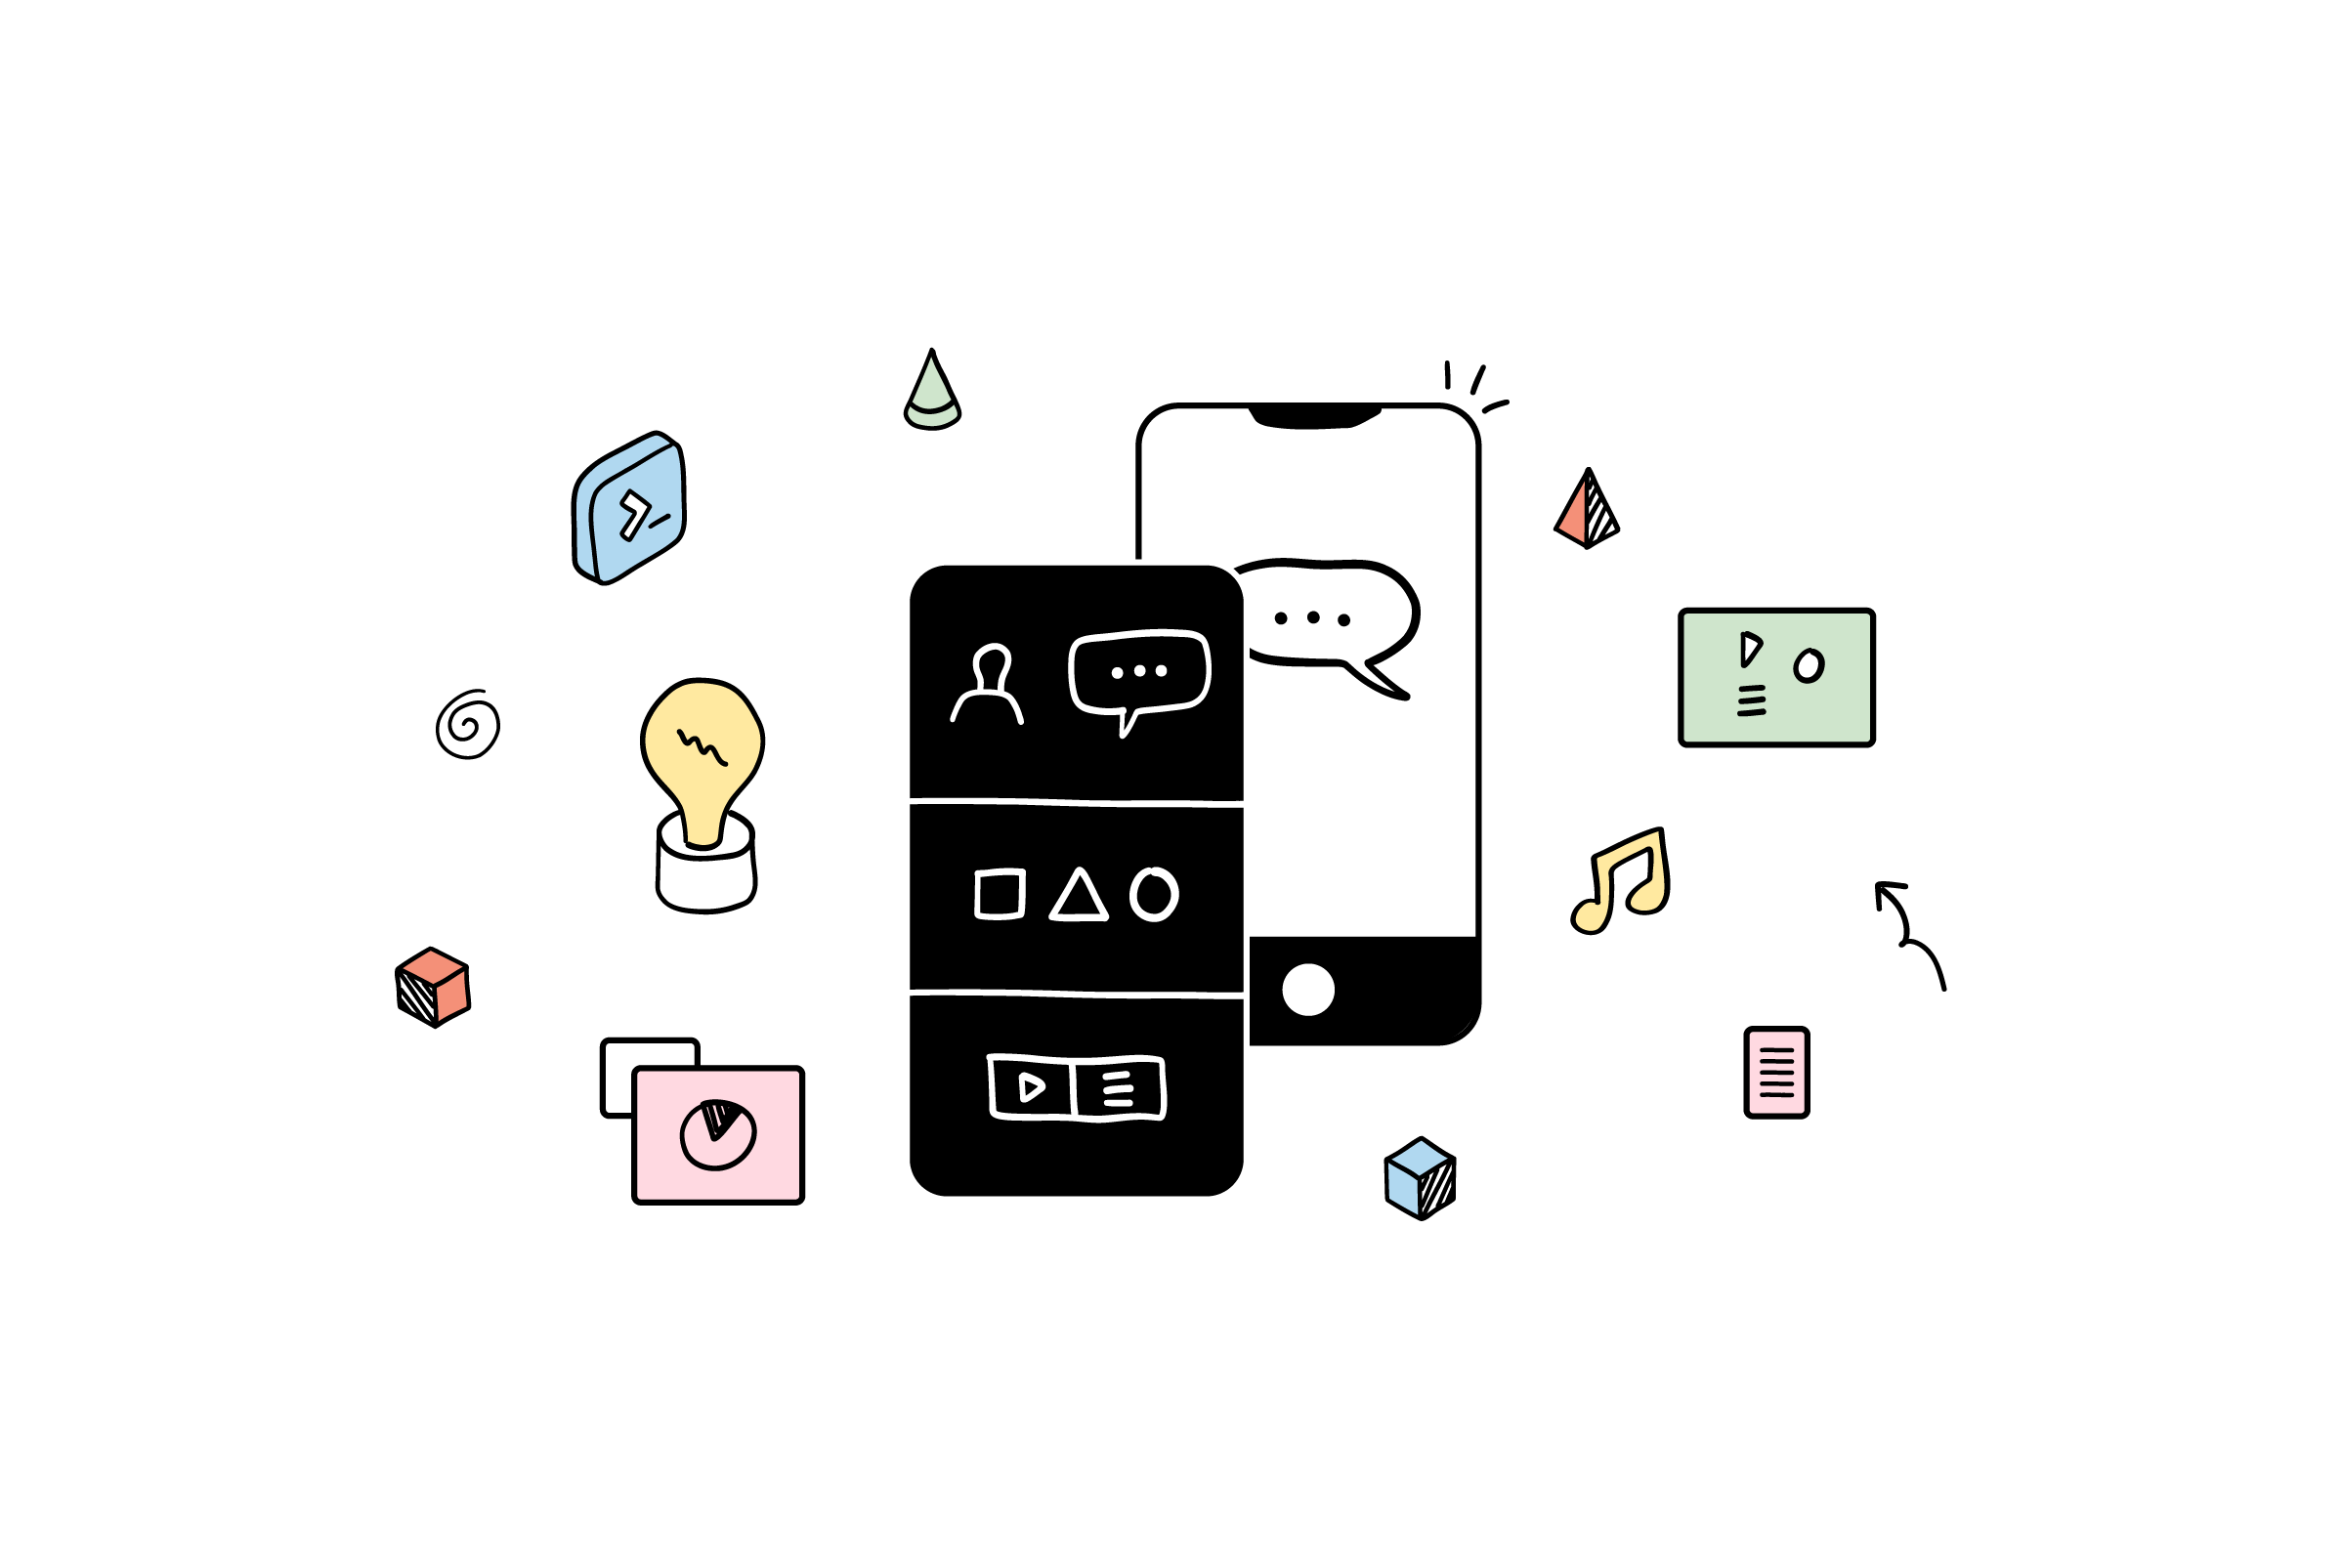 a graphic illustration of two mobile phones with icons floating around them